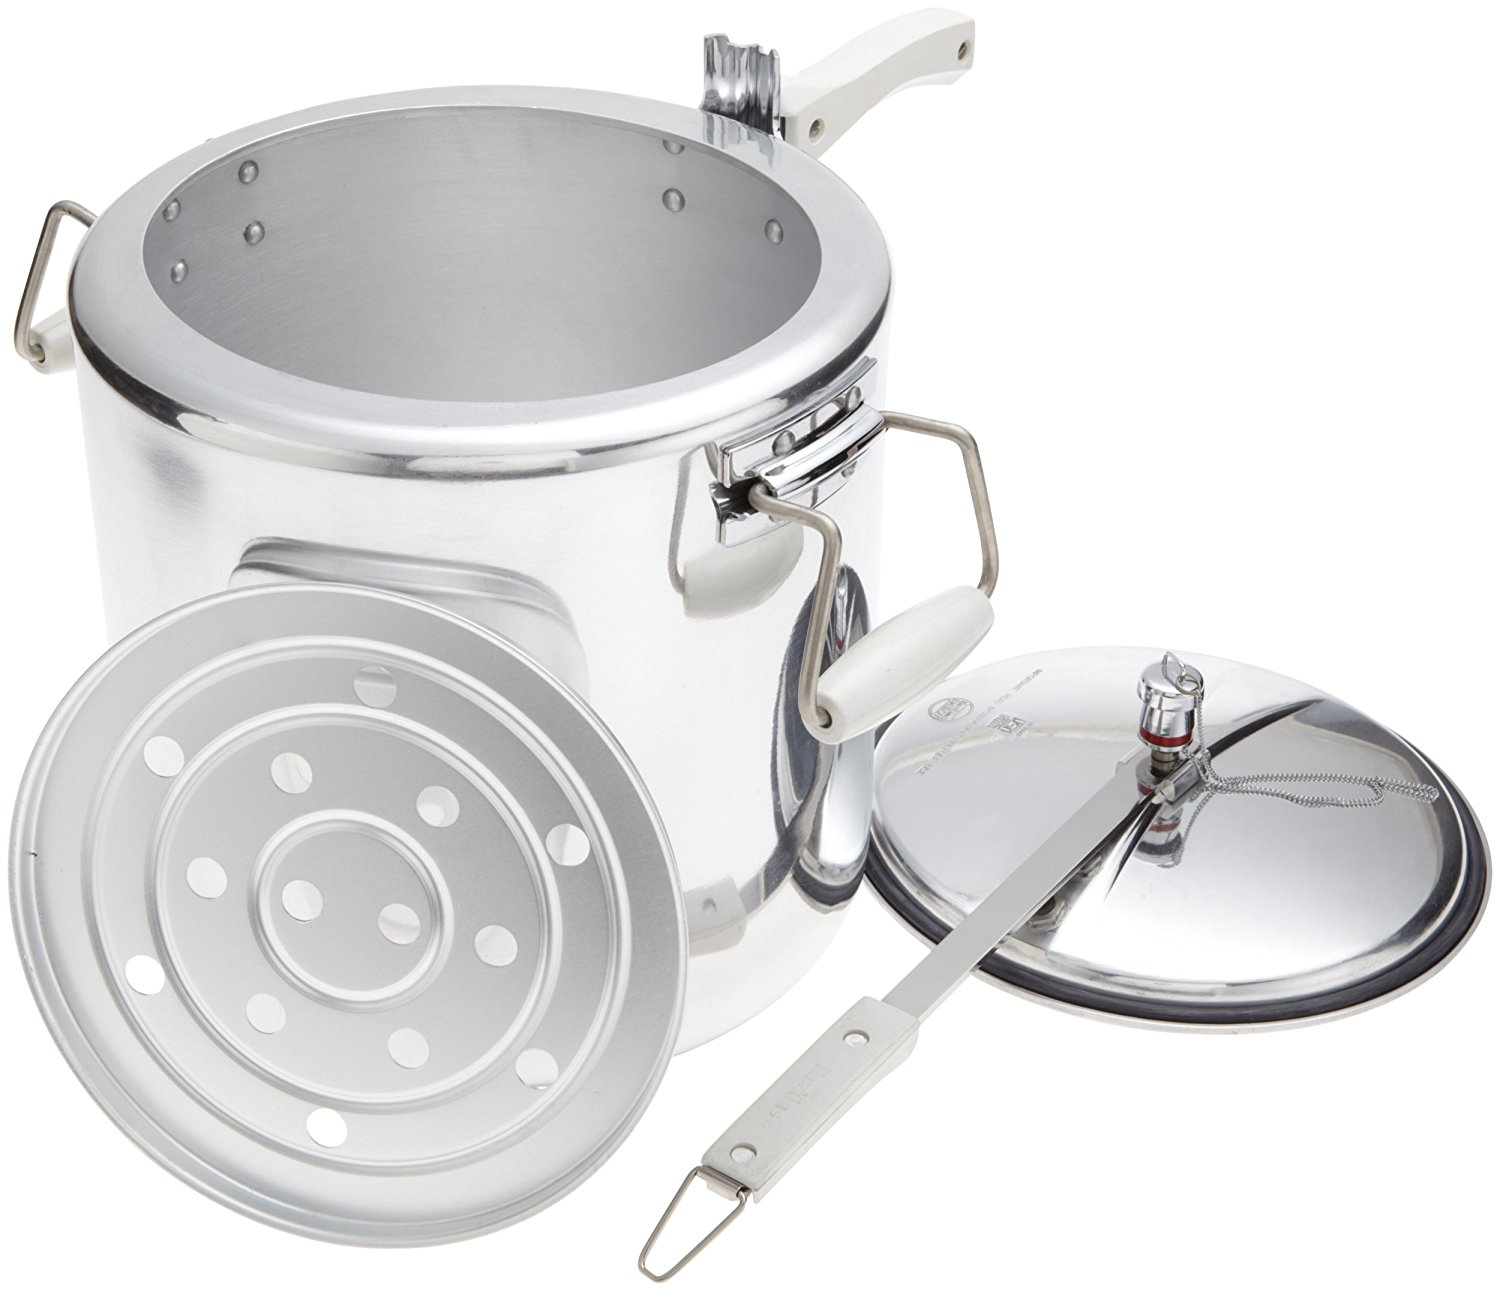 6 Best Extra Large Pressure Cookers With Exact Sizes And